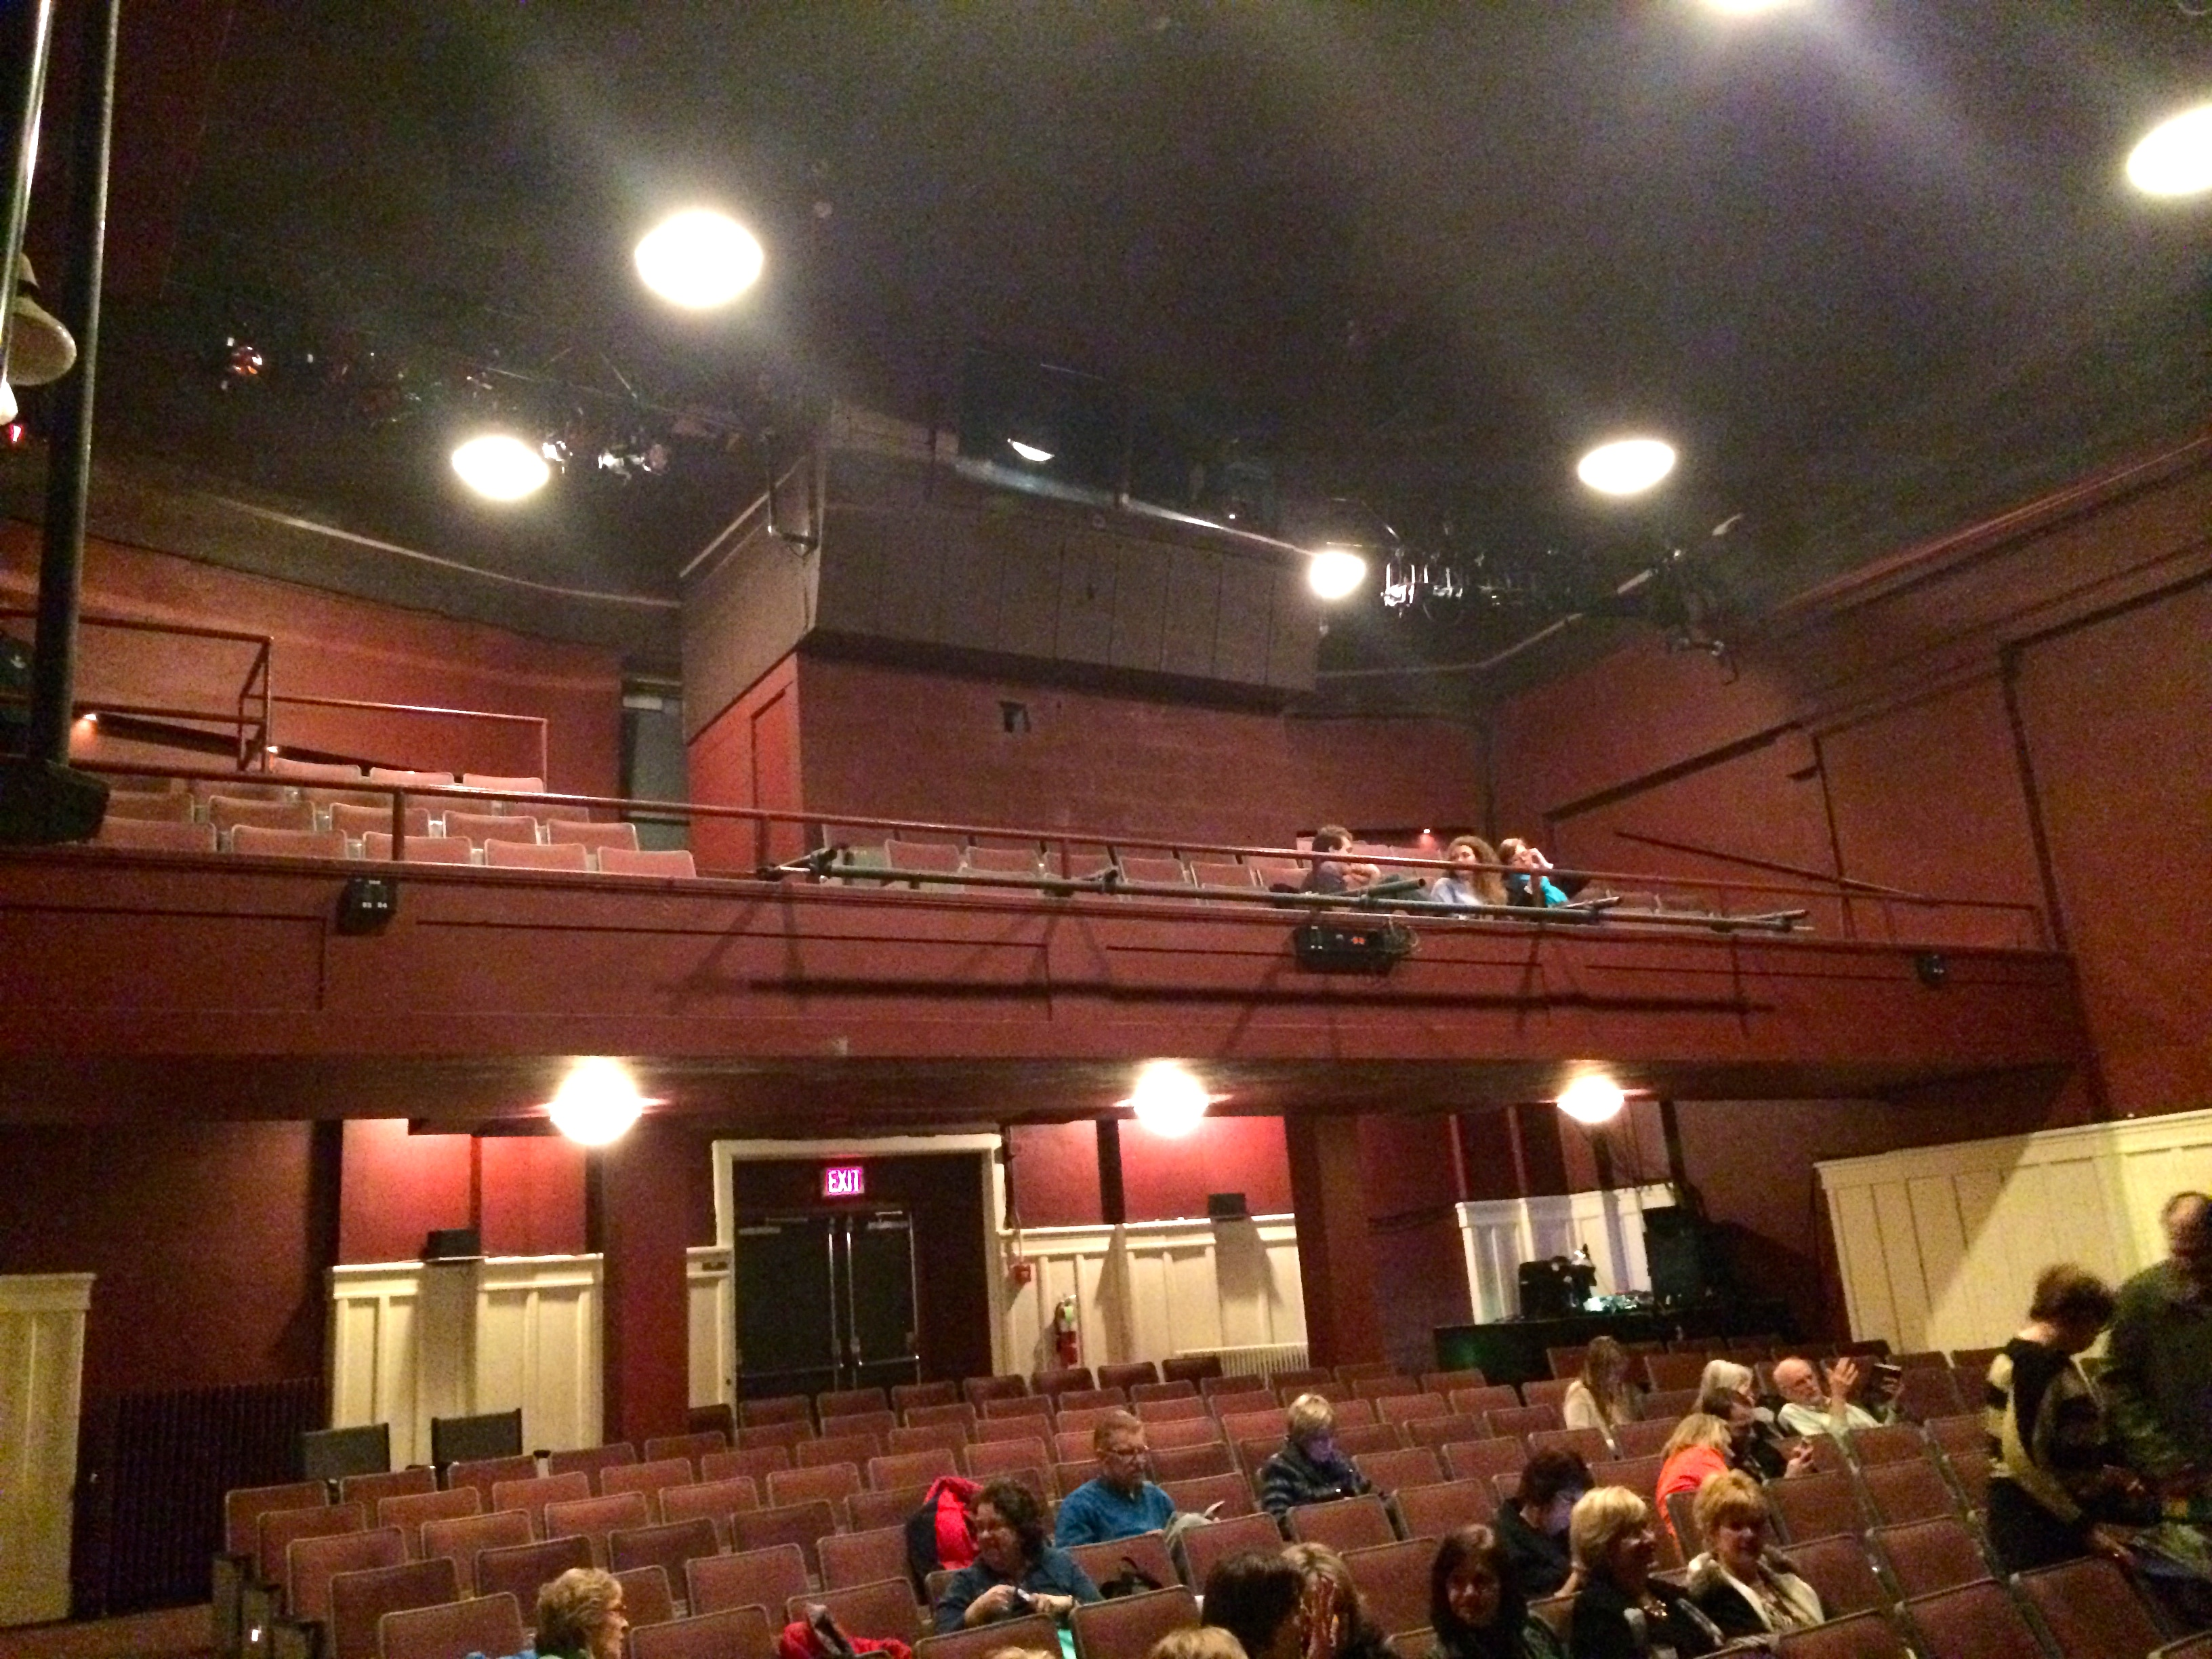 Pittsburgh Playhouse Balcony Rail